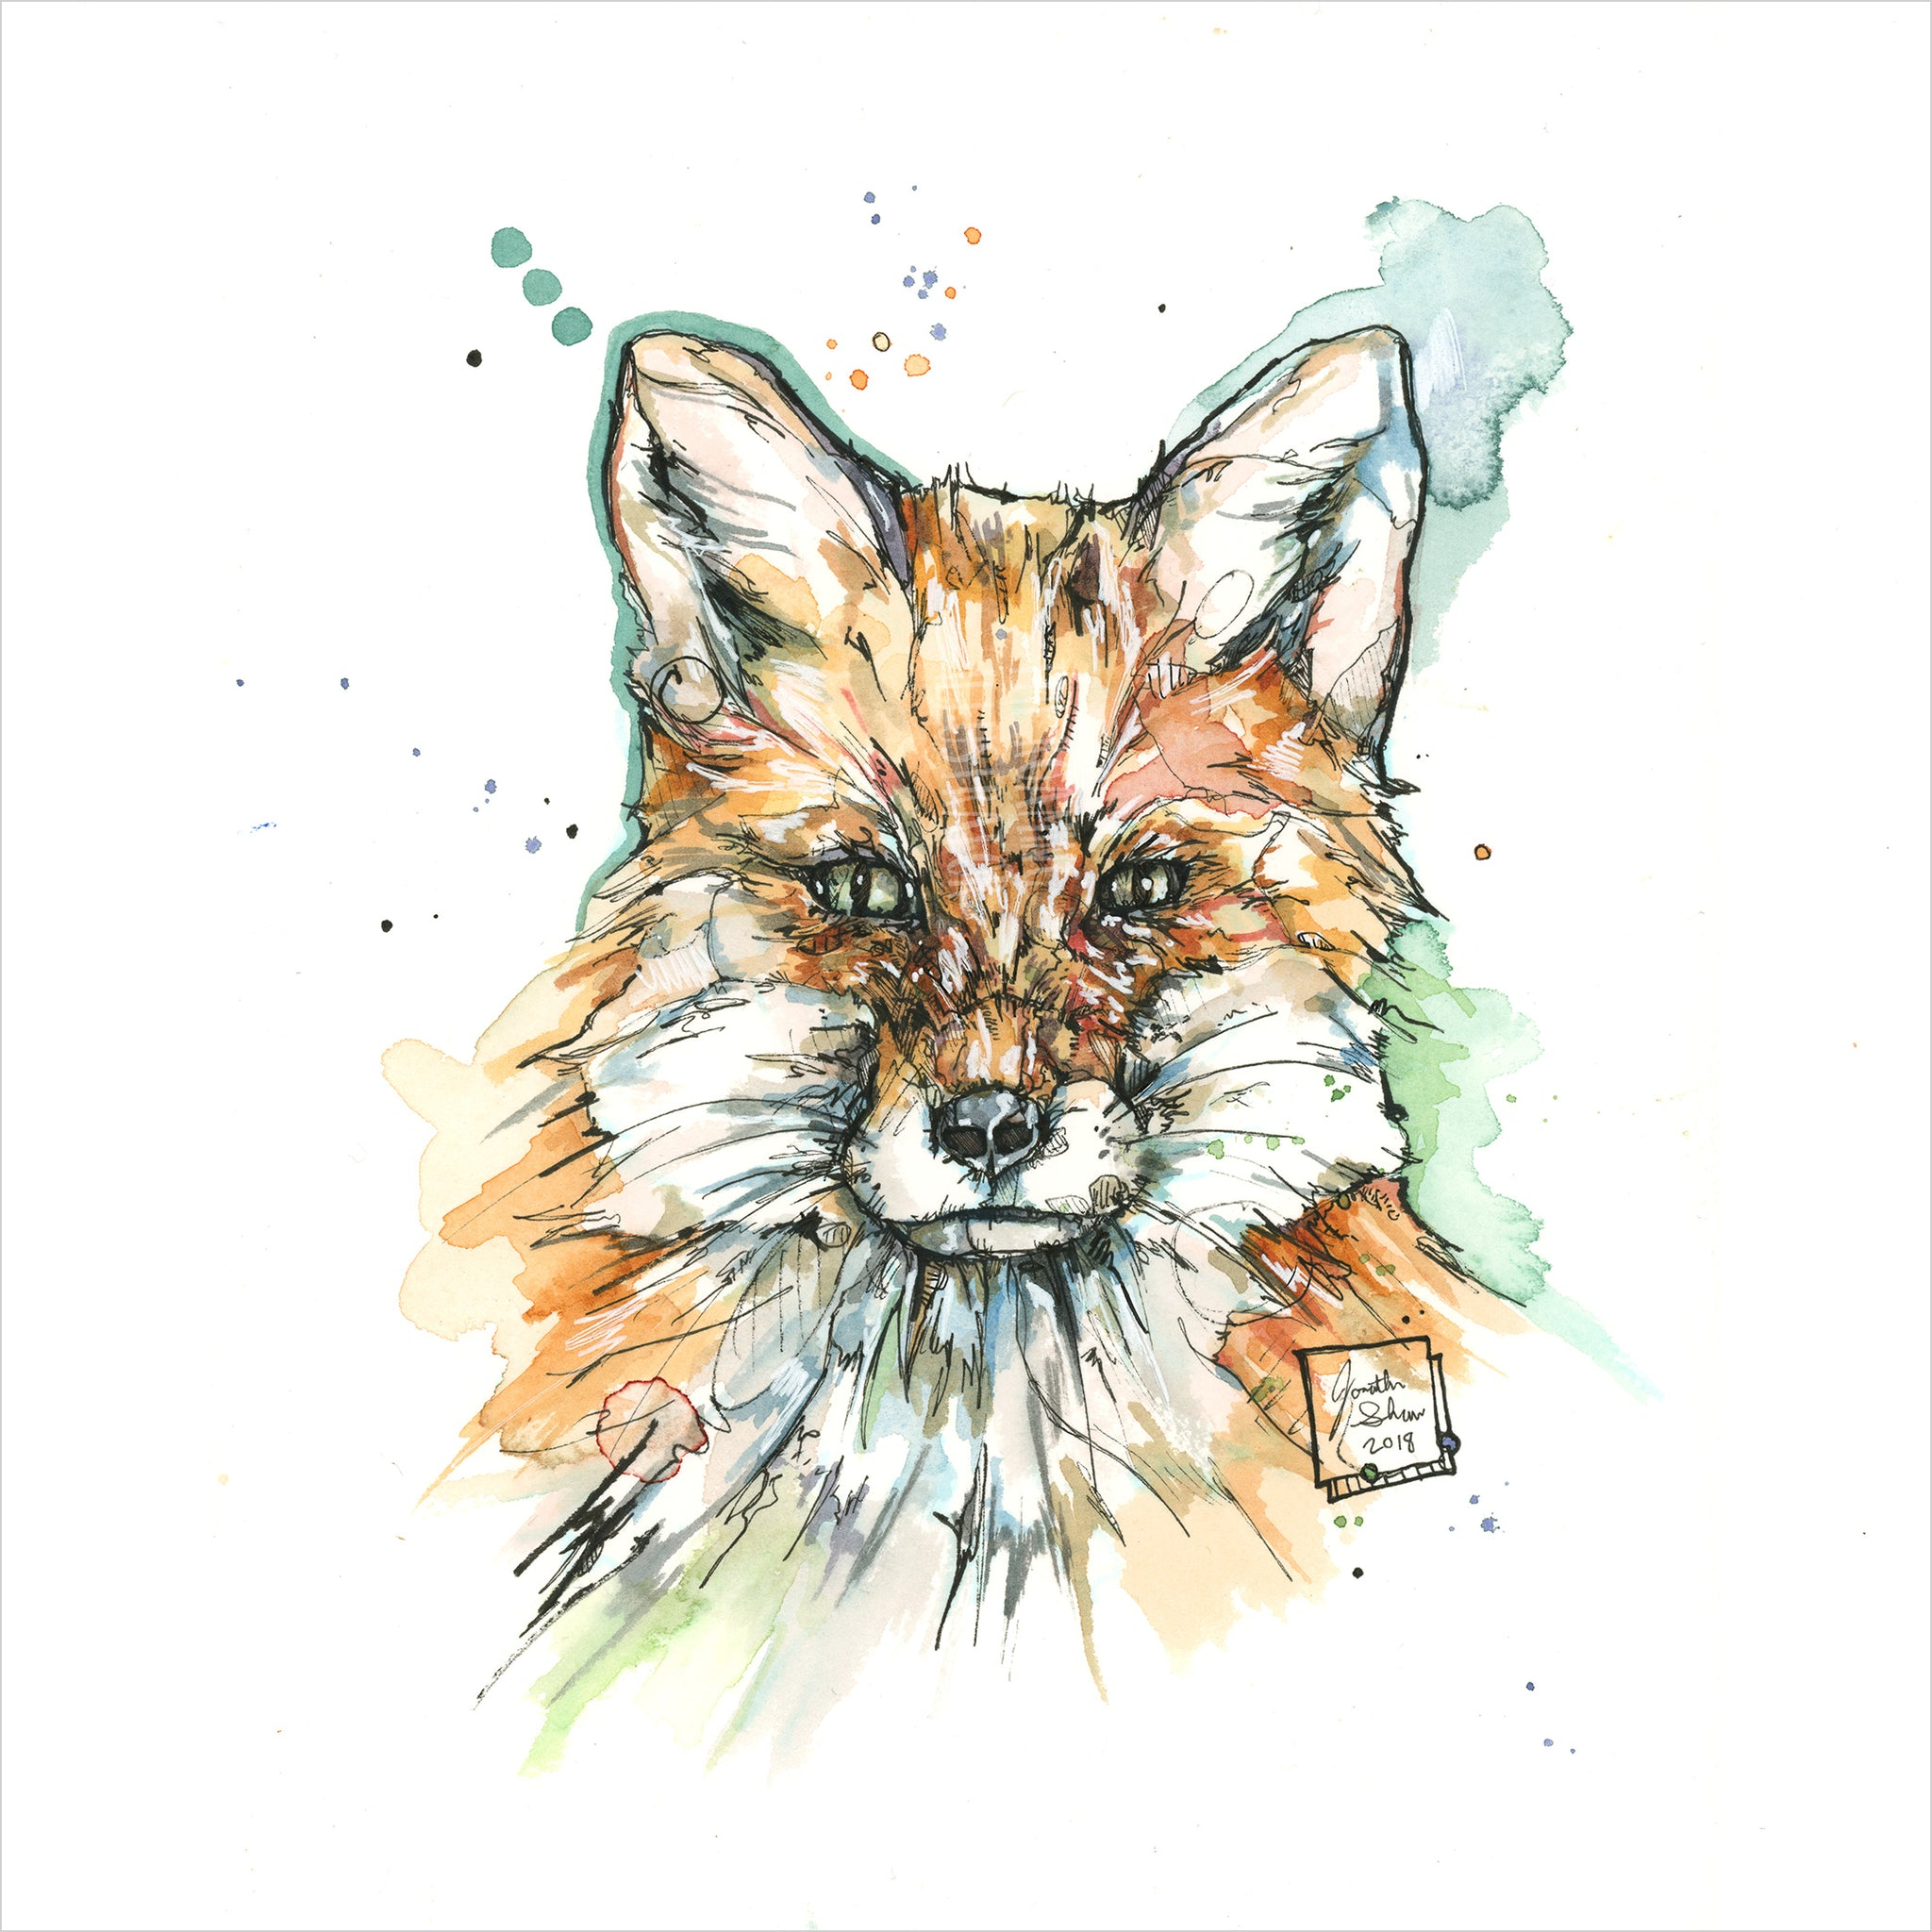 """Red Fox"" - Original 8x10 Illustration (SOLD)"